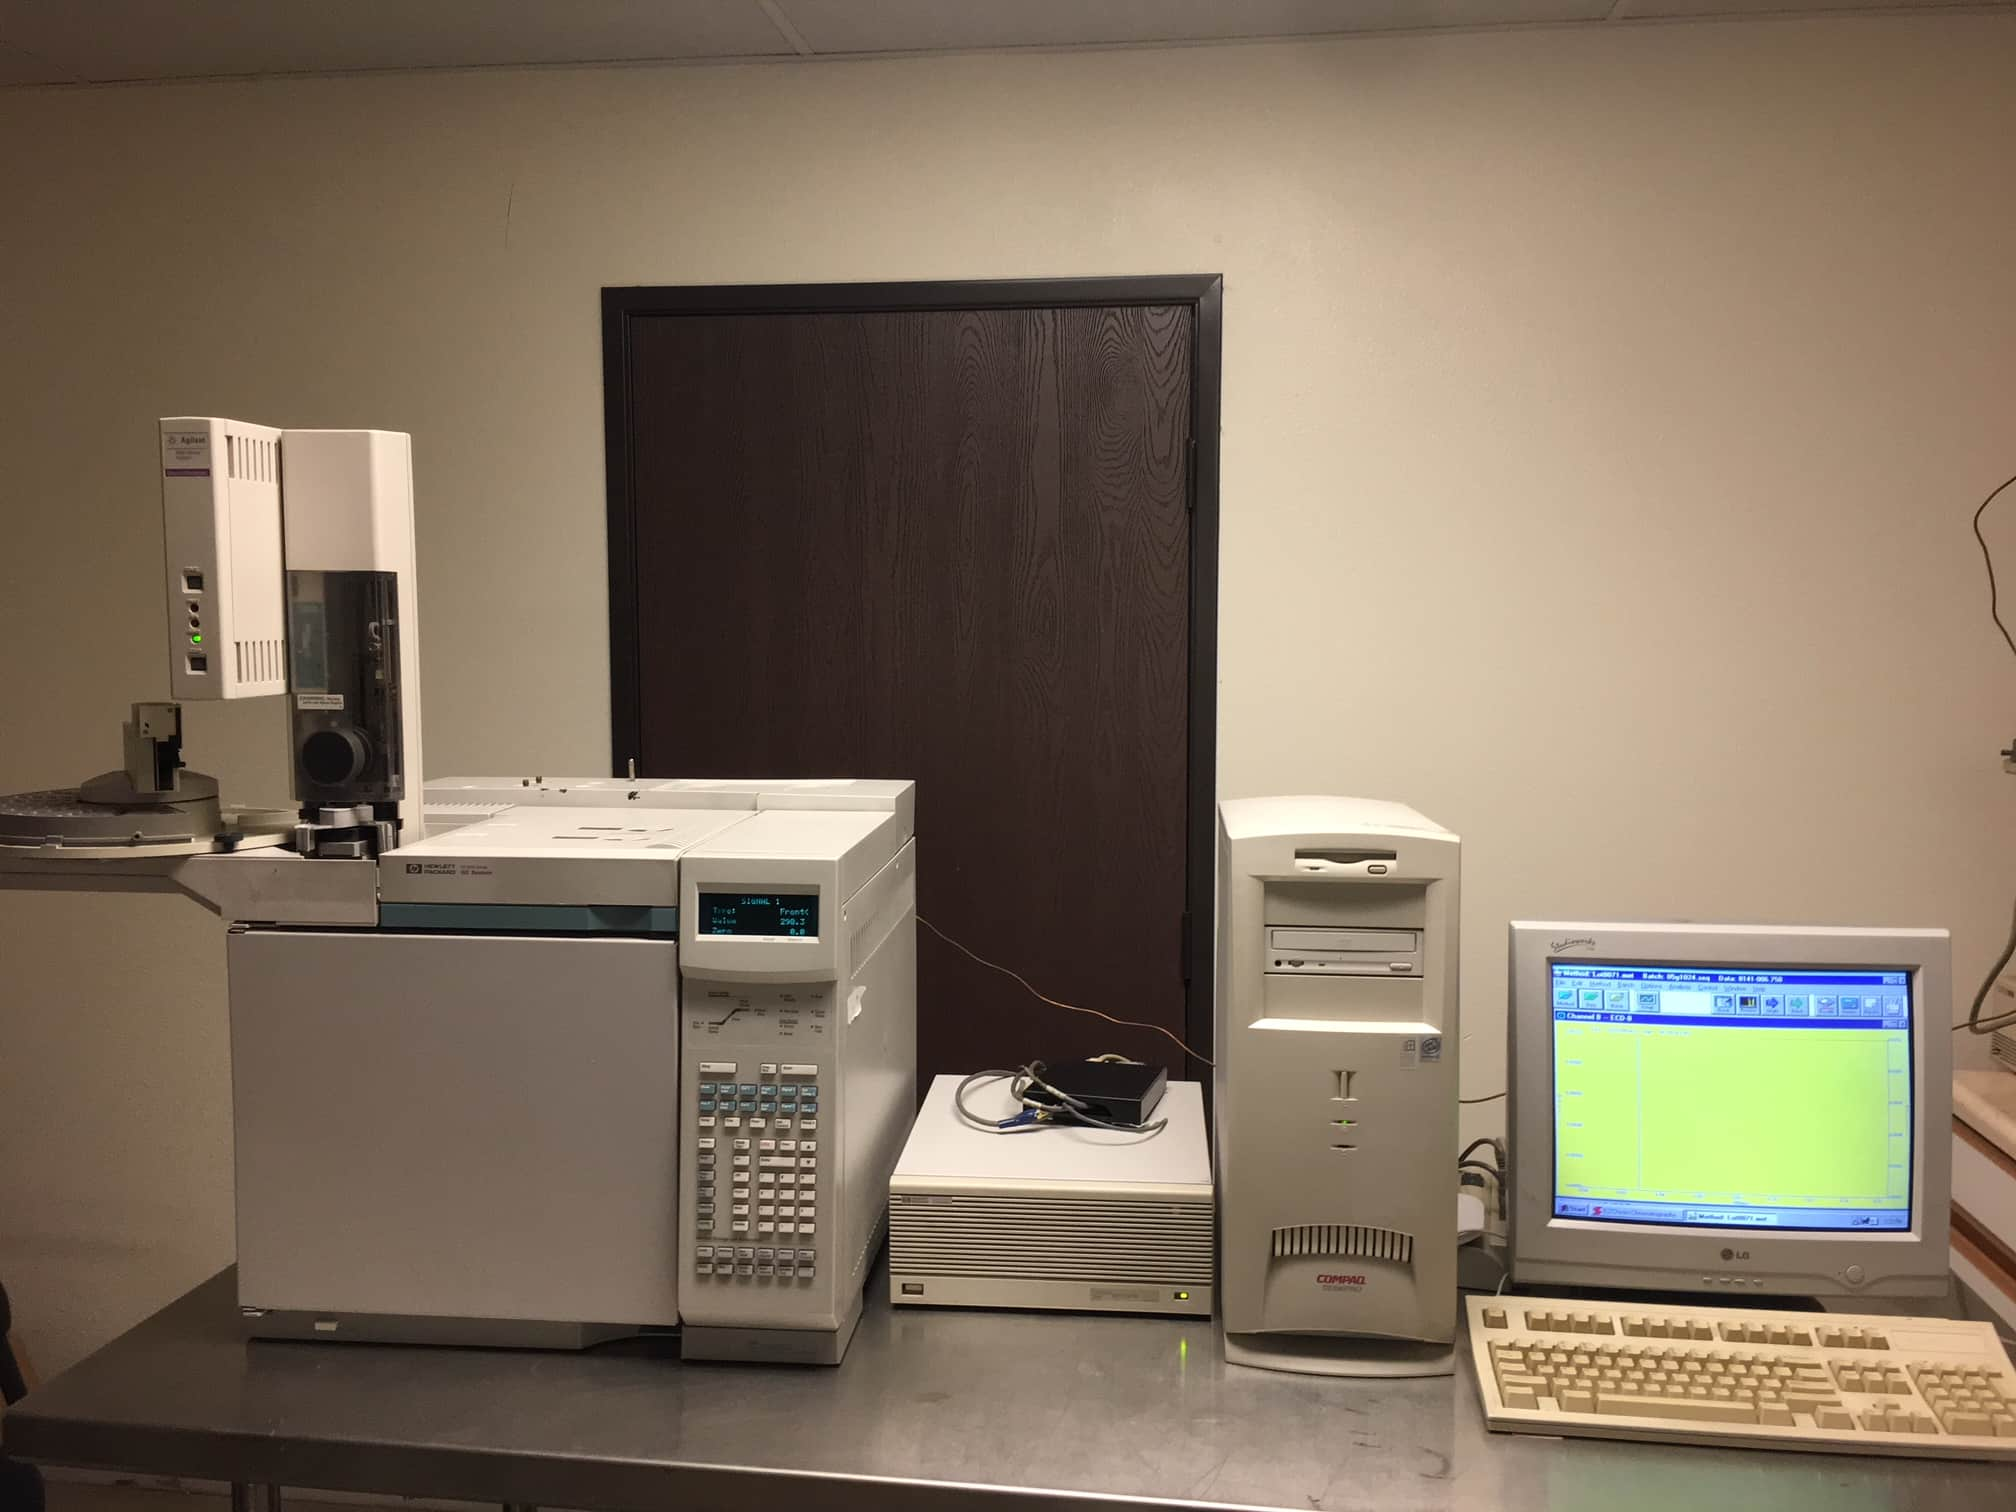 Complete Agilent GC 6890 with dual ECD/autosampler/data system